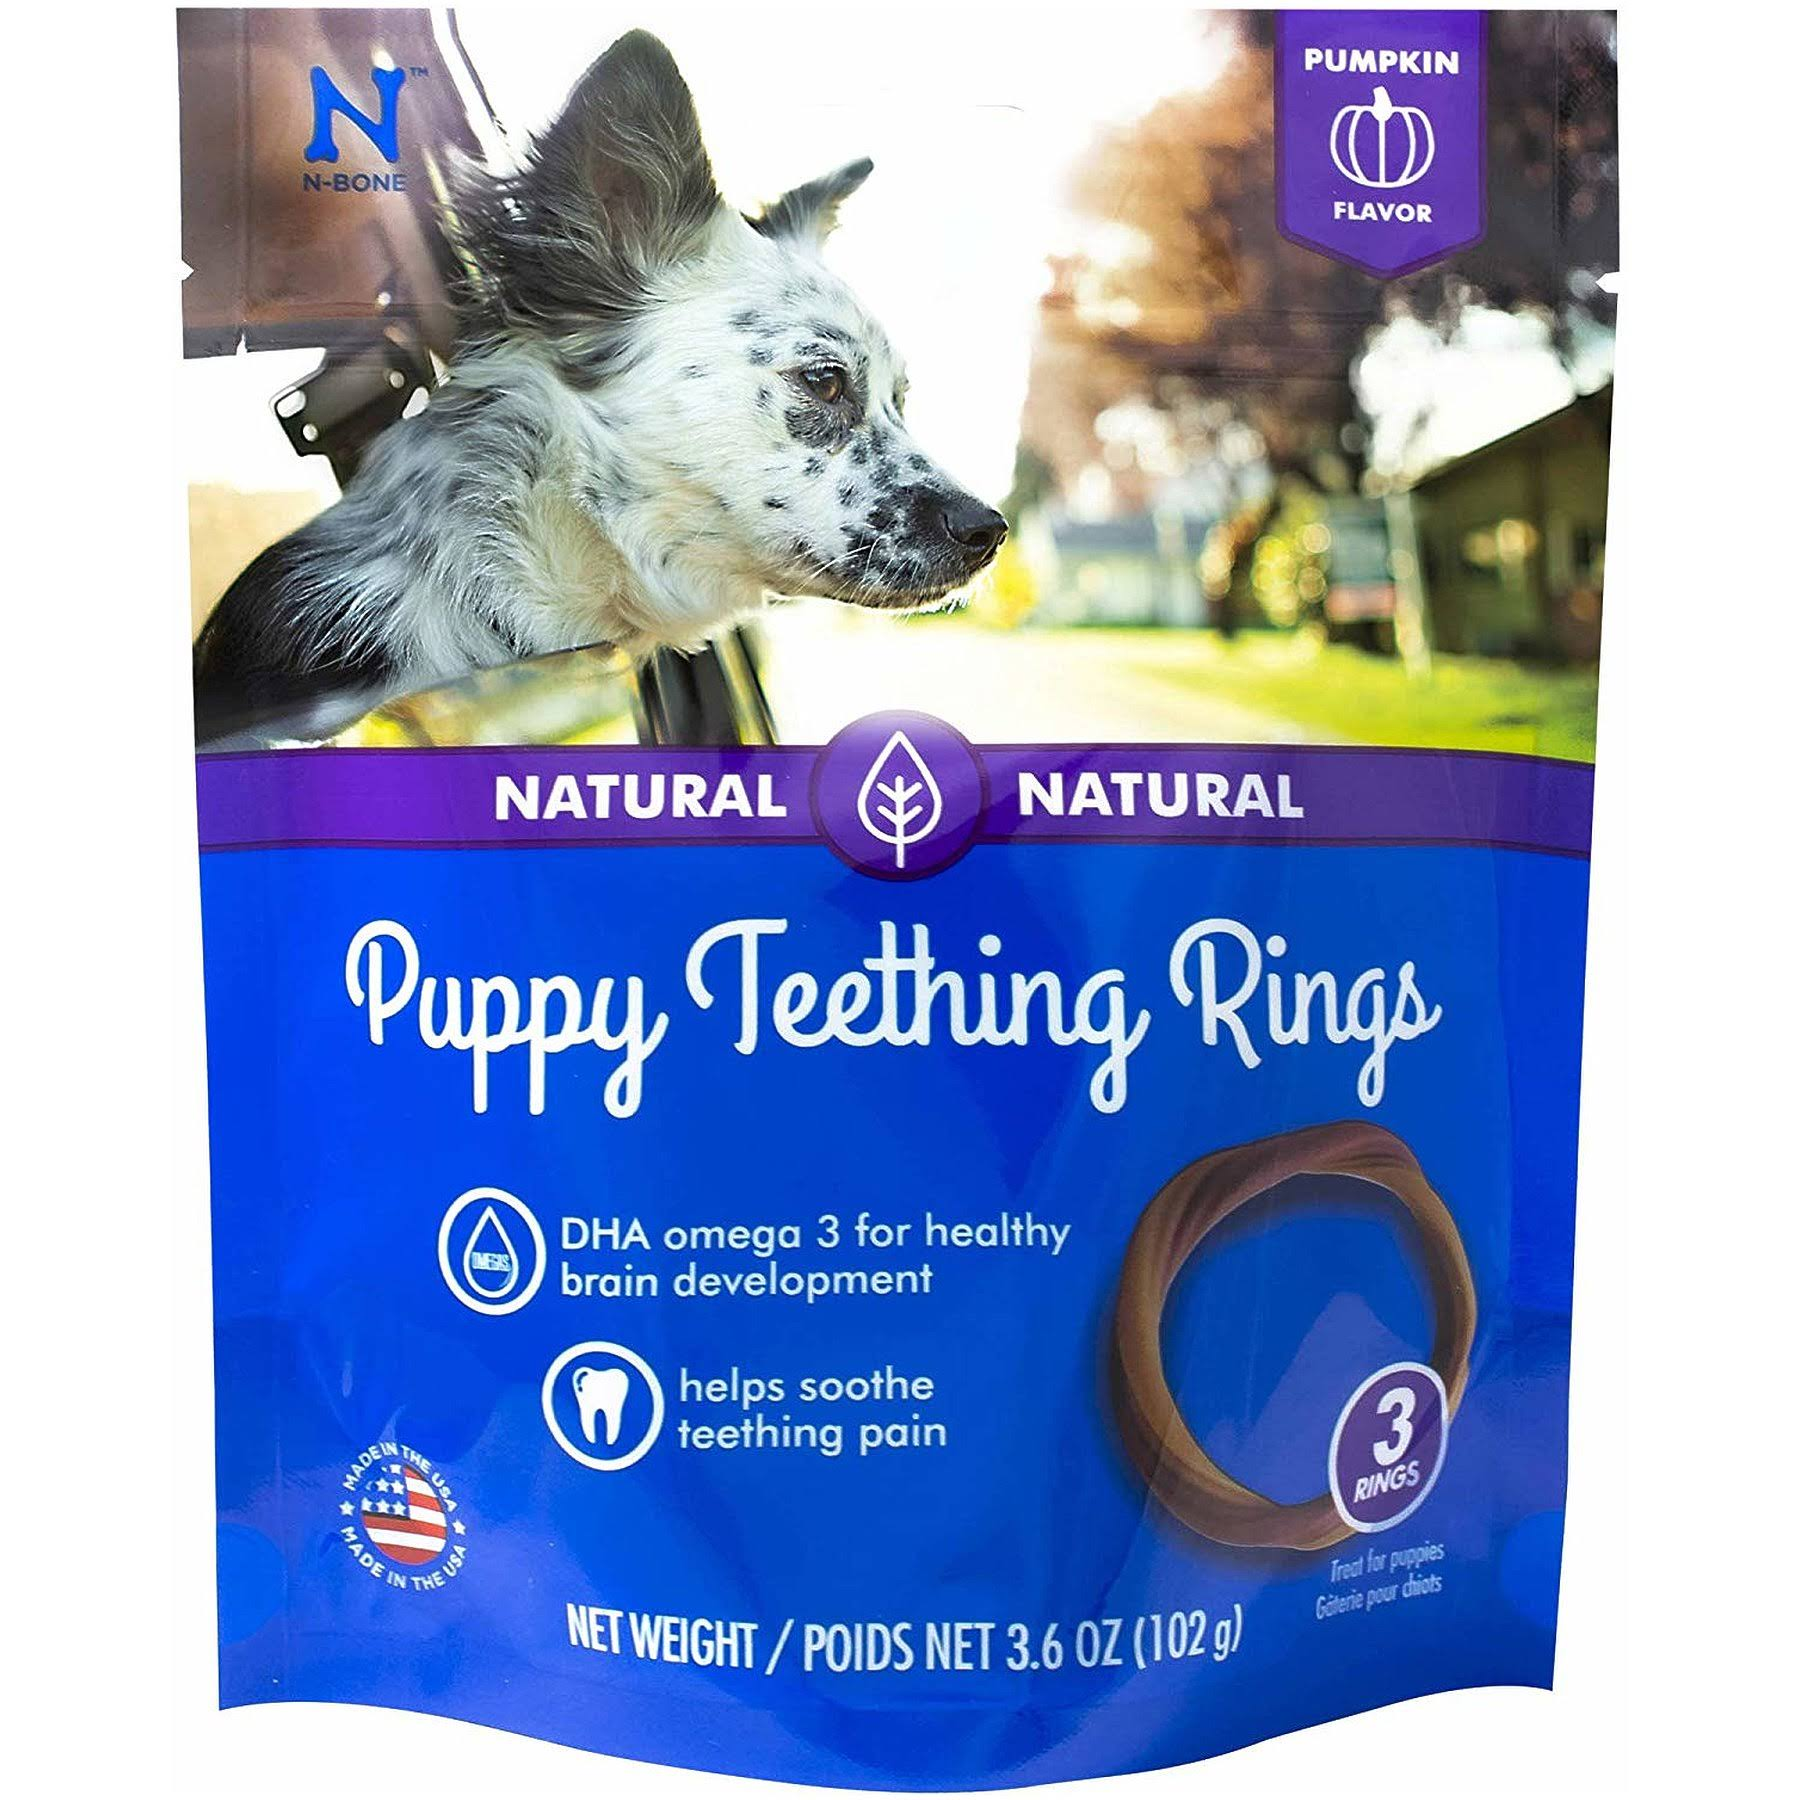 N-Bone Natural Puppy Teething Rings - Pumpkin Flavor, 3ct, 3.6oz